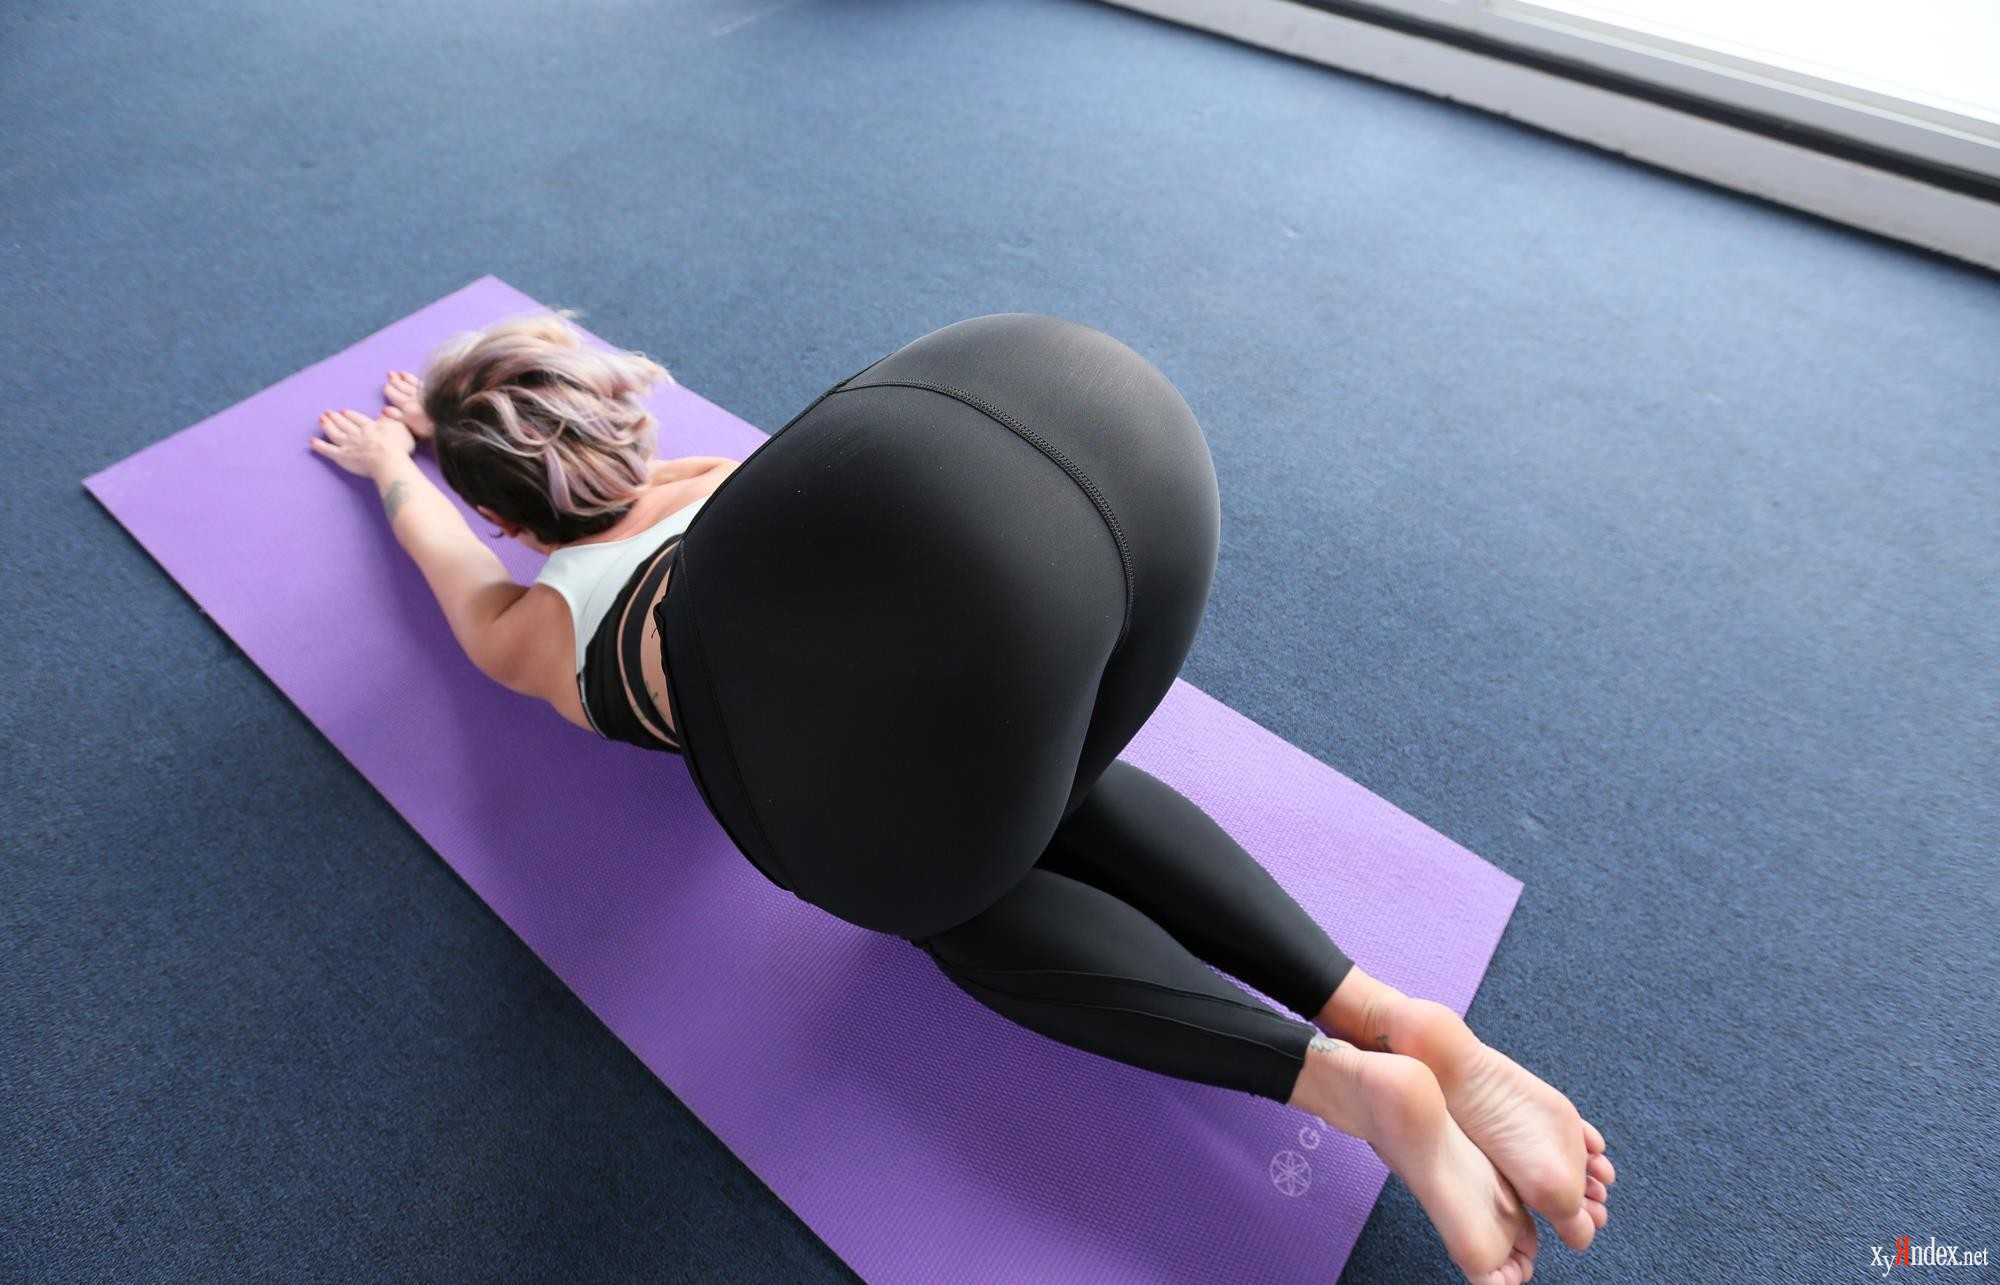 Exercises Buttocks Yoga Pants Fitness Motivation Big Booty Training Butt Workout